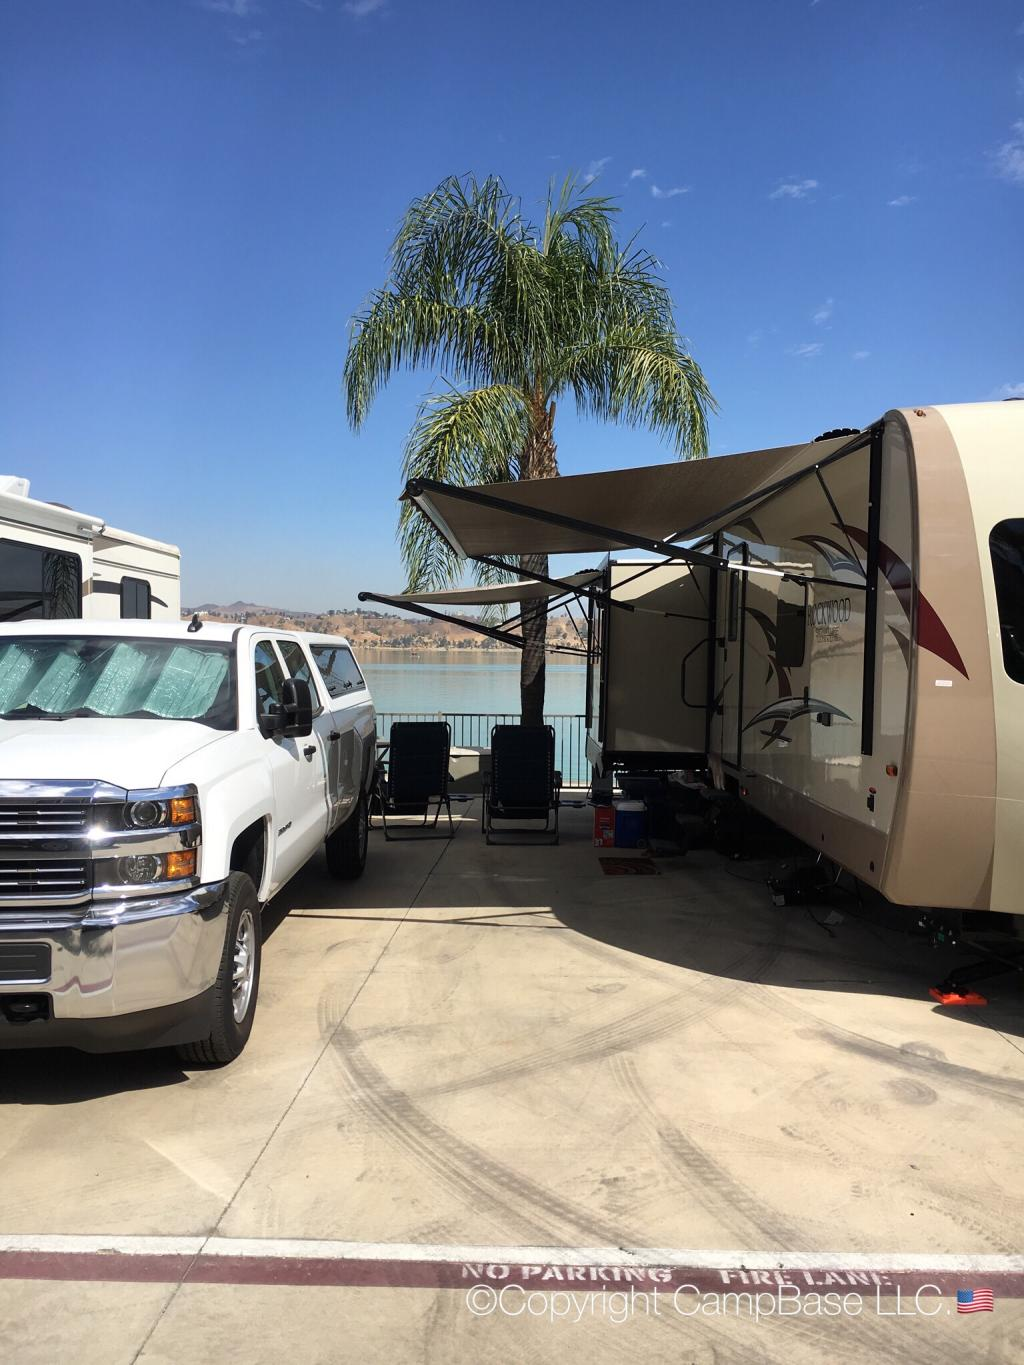 Crane Lakeside Rv Resort Lake Elsinore California